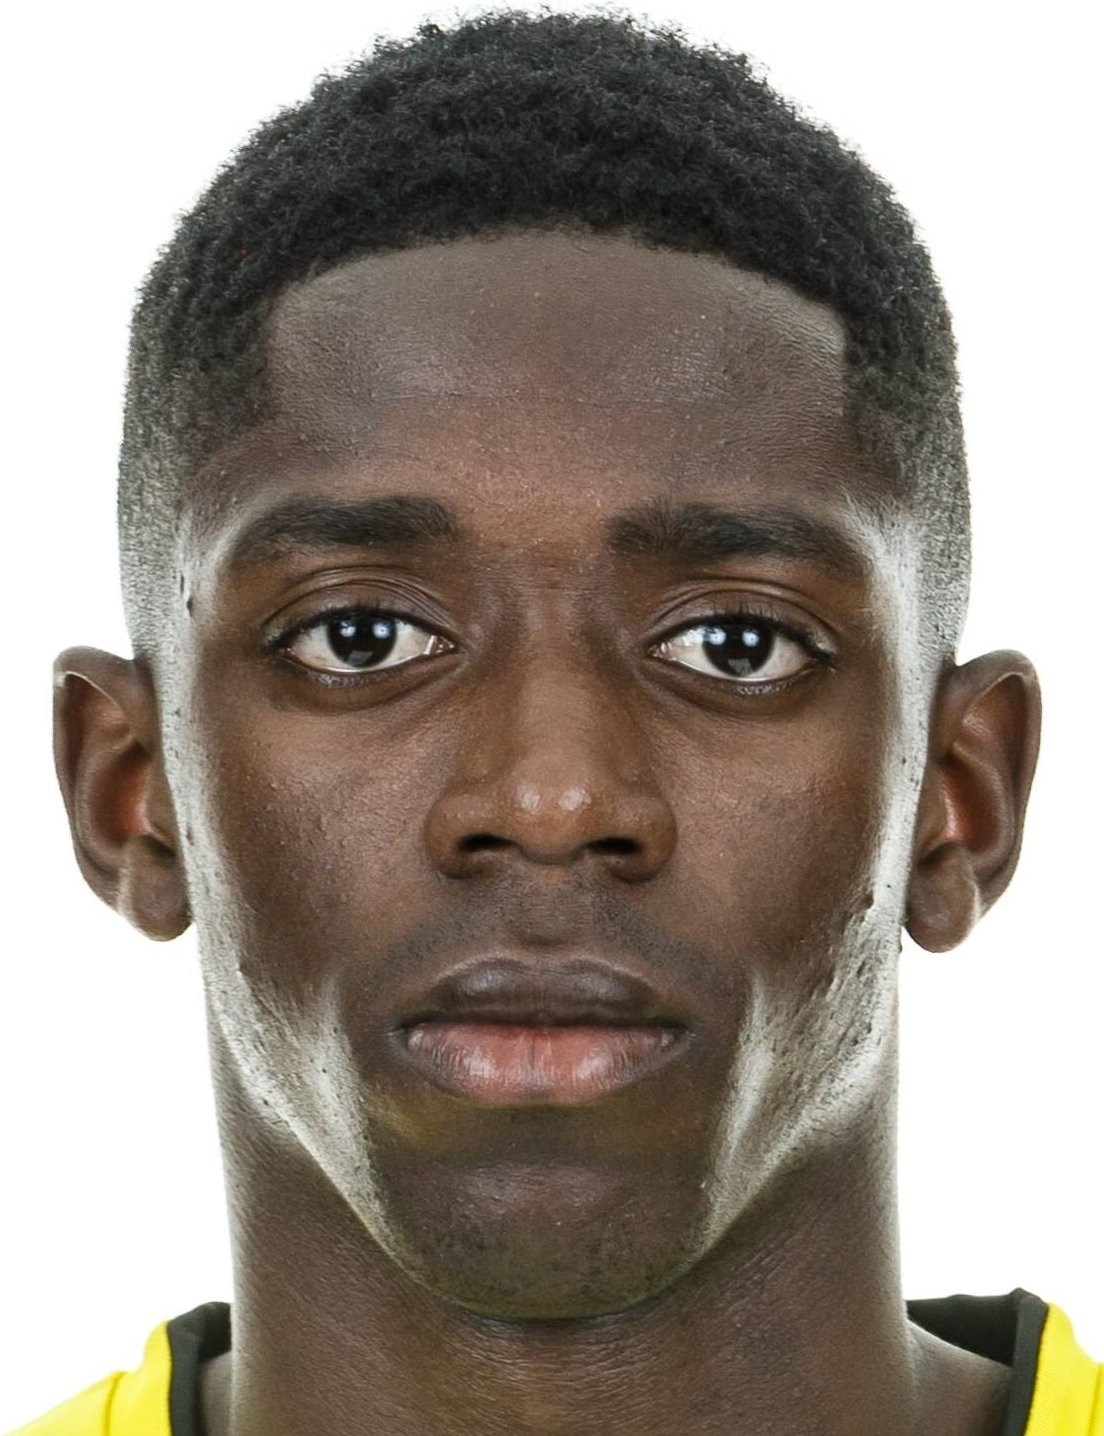 Ousmane Dembélé Player Profile 17 18